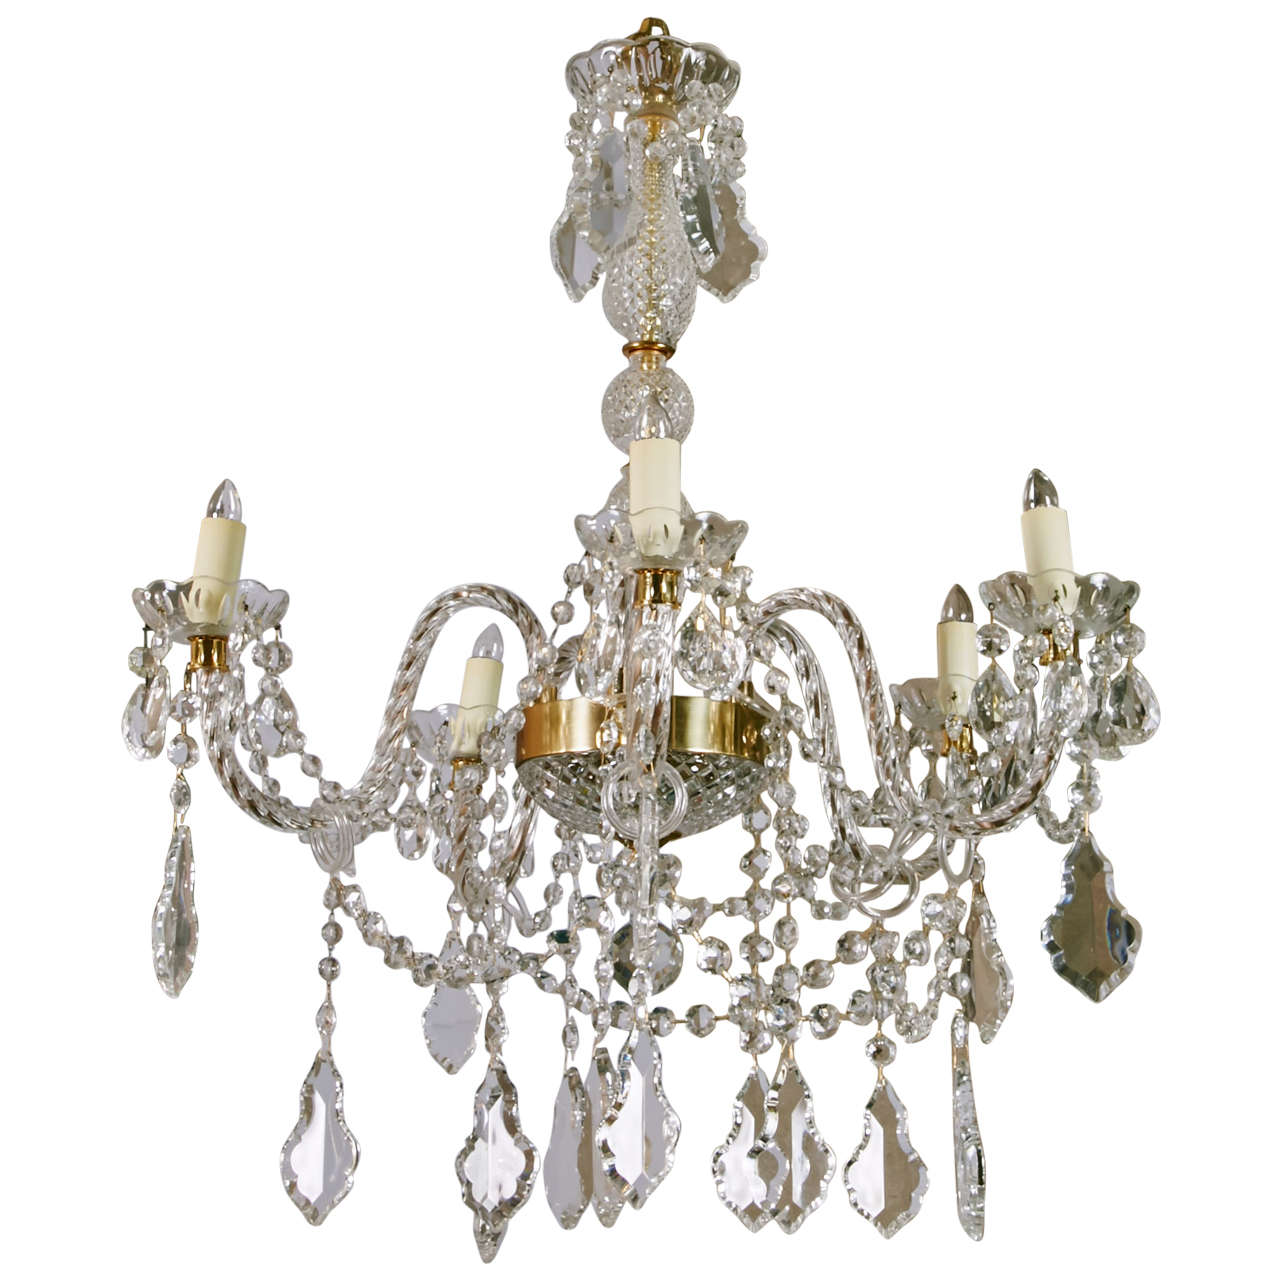 1940s France Classic Crystal Chandelier At 1stdibs